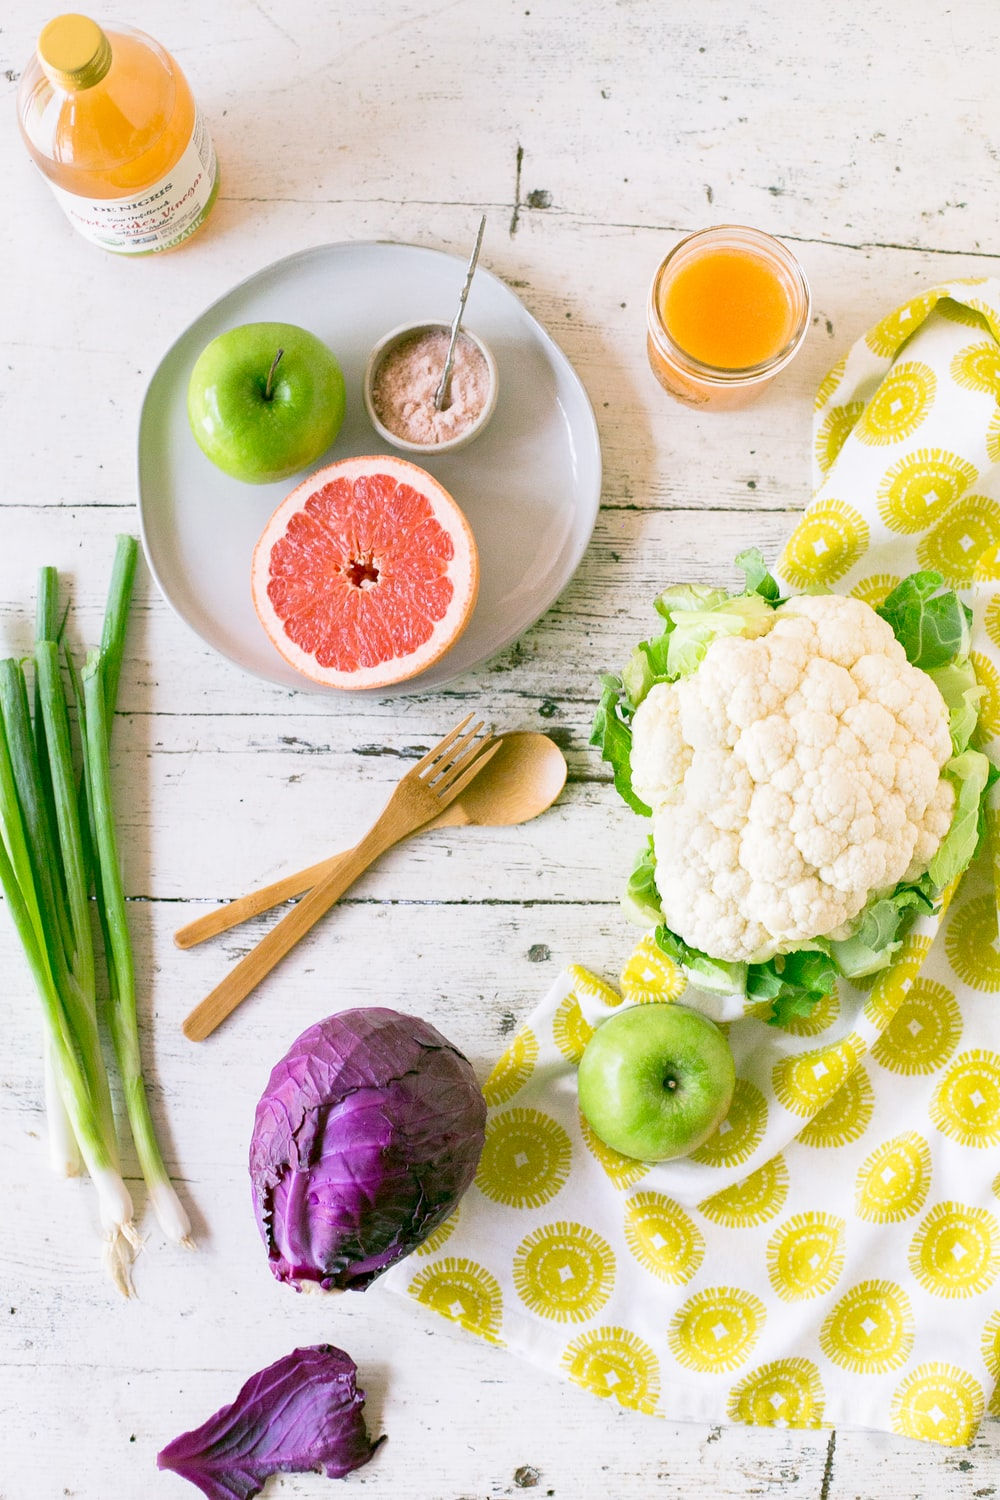 green apple, sliced of grapefruit with purple cabbage, scallions and cauliflower on table